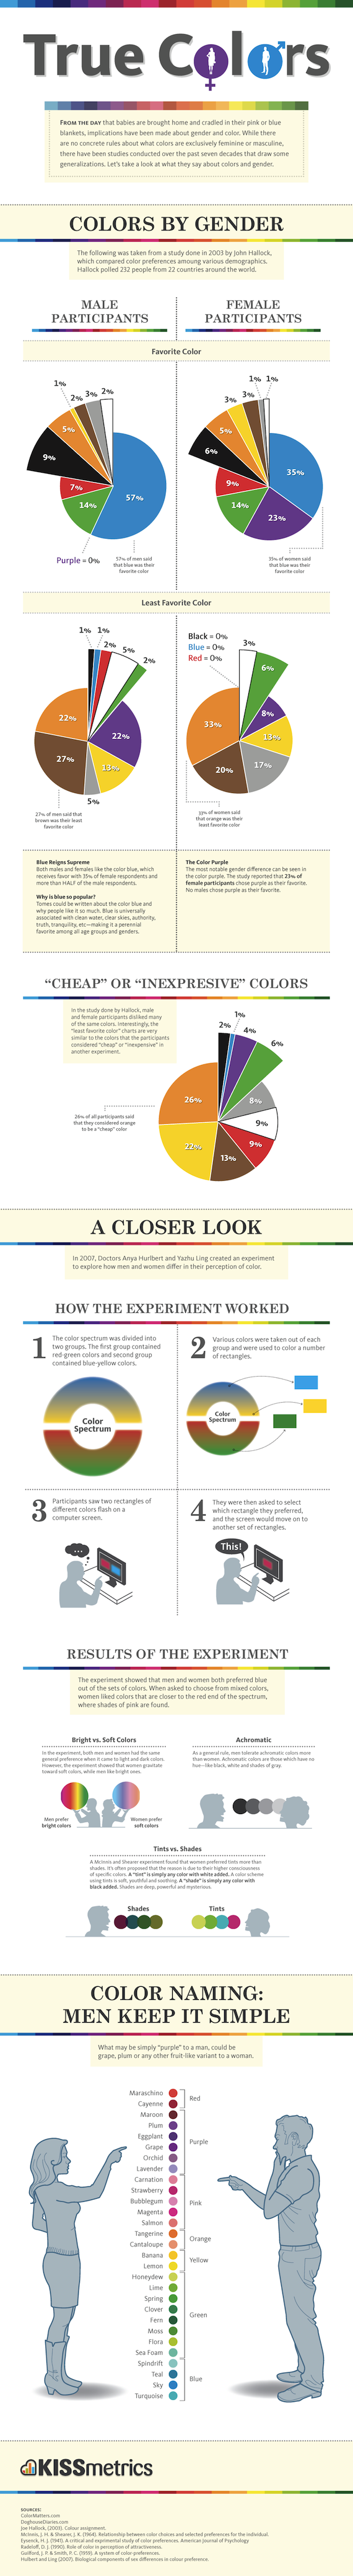 infographic color preferences by gender How Gender Affects Color Marketing and Branding